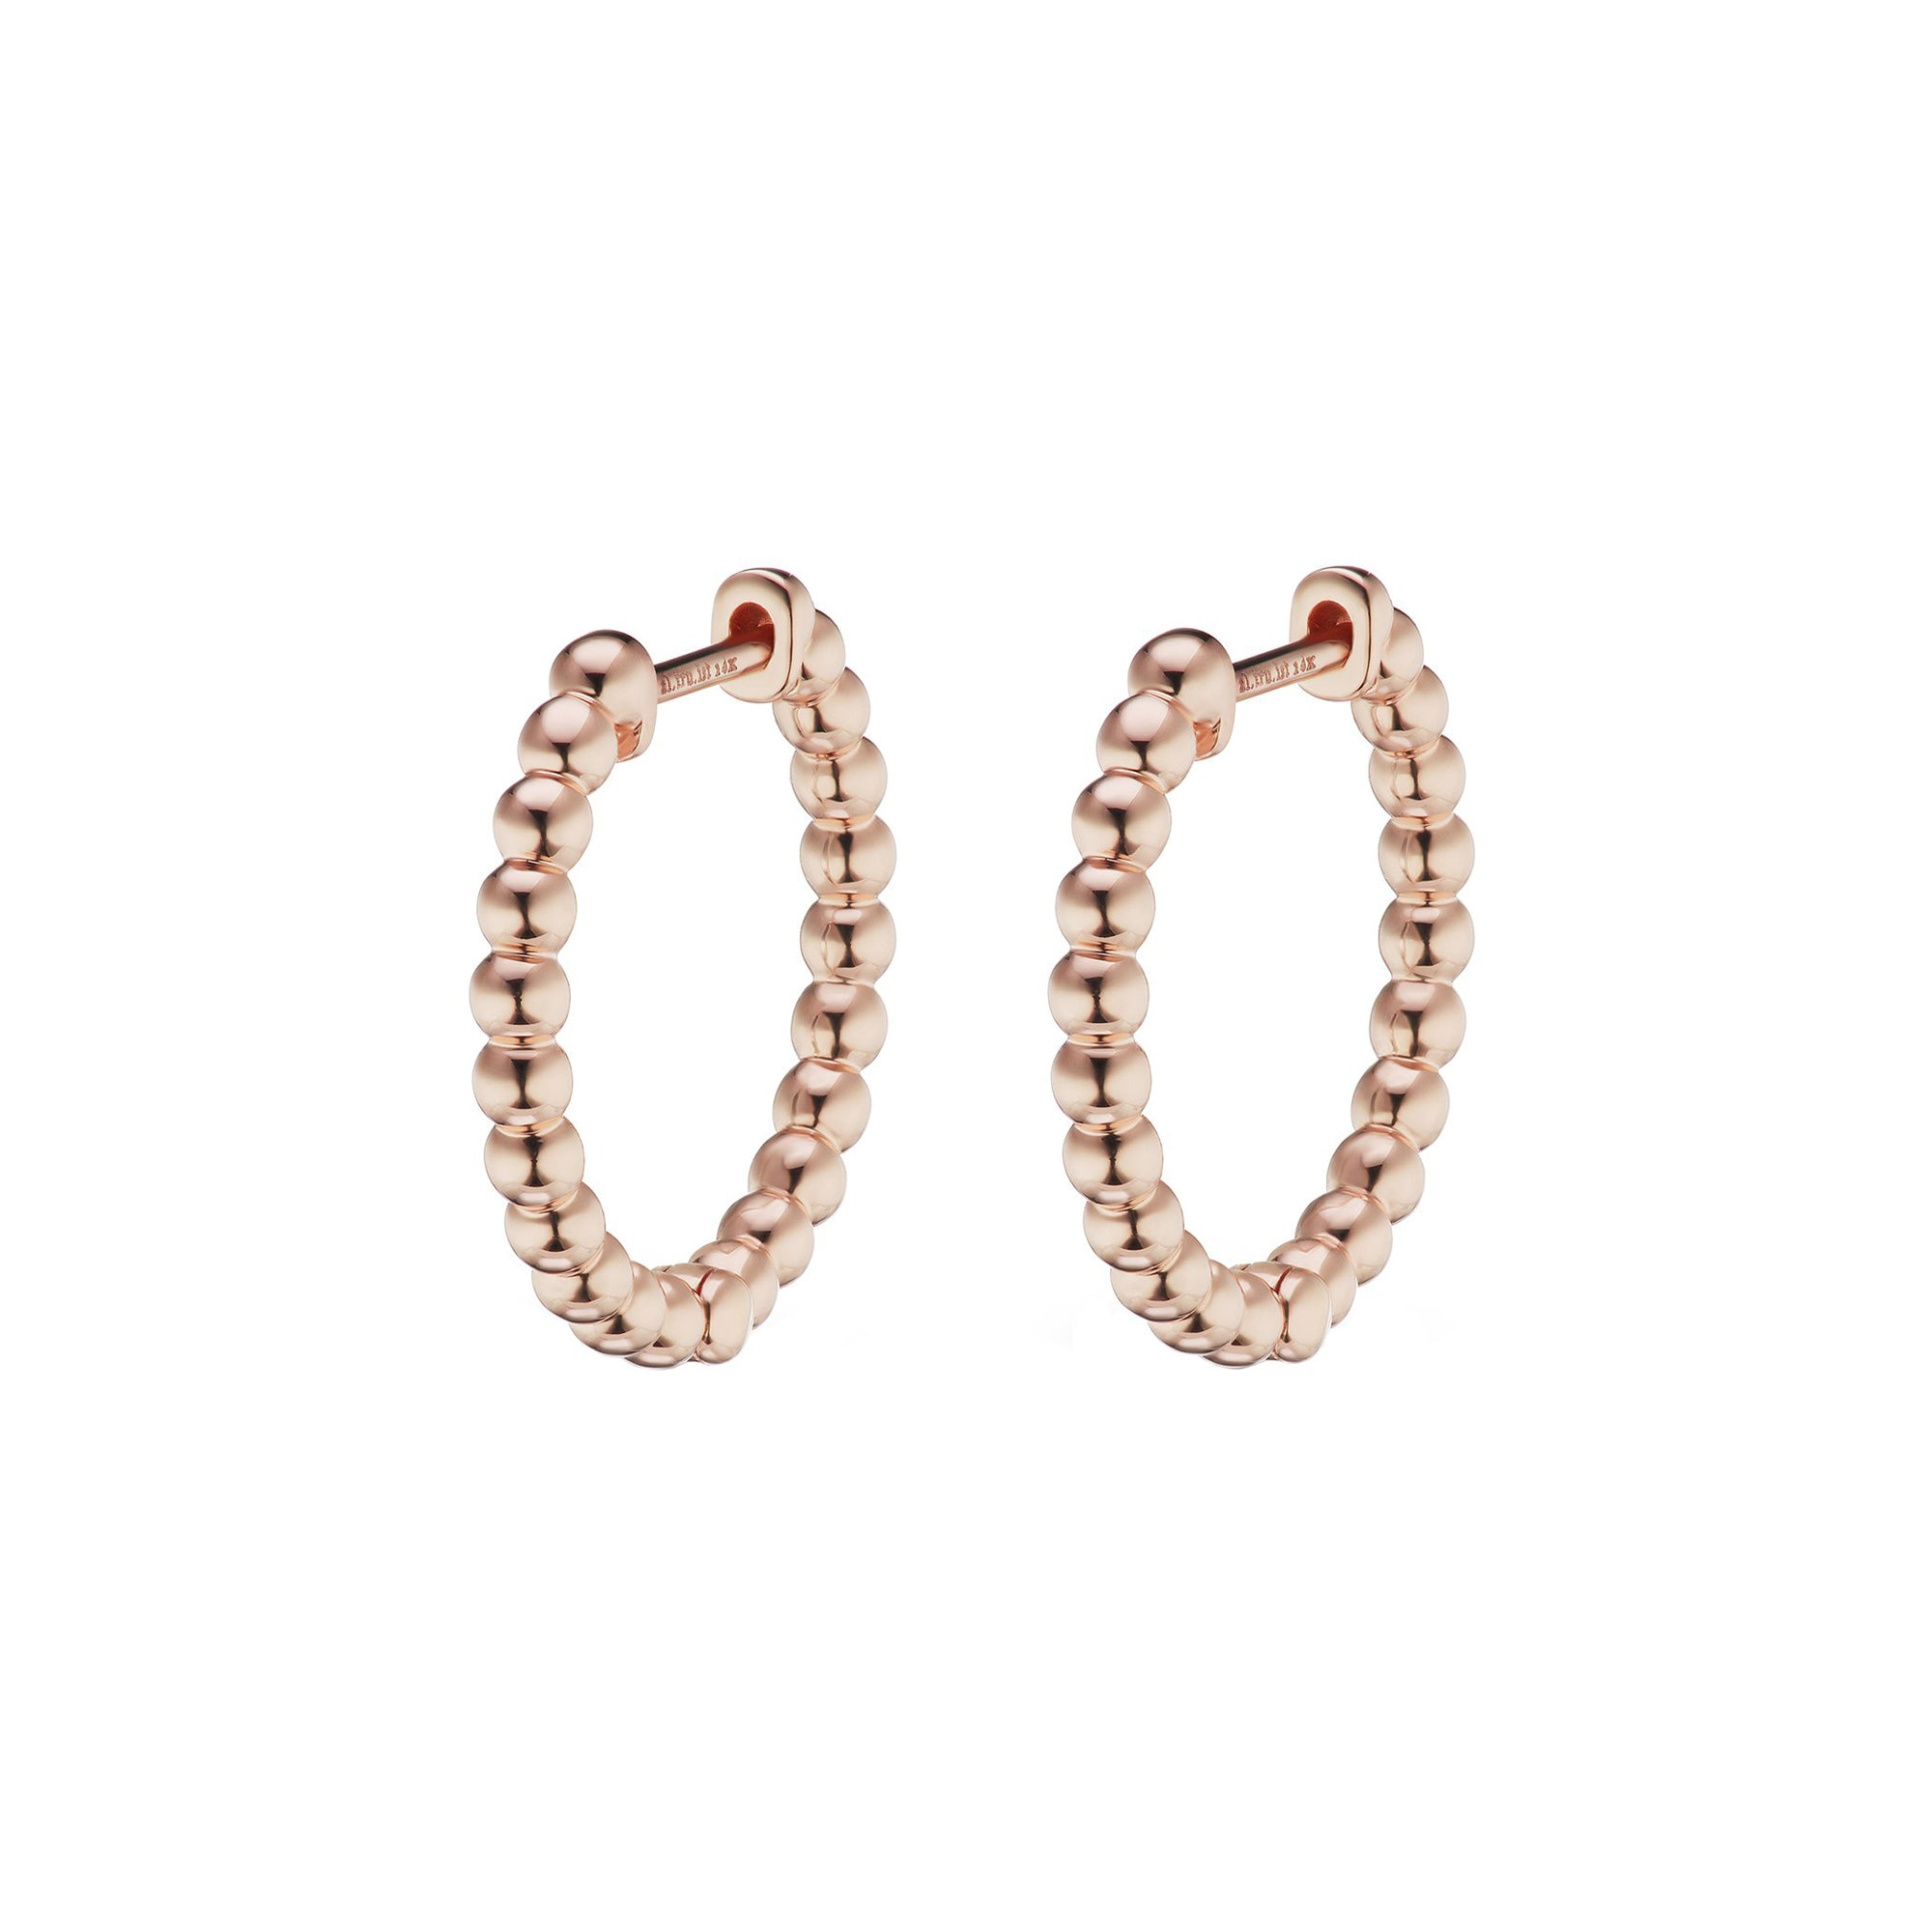 10mm Volataire Beaded Hoops by Altruist for Broken English Jewelry